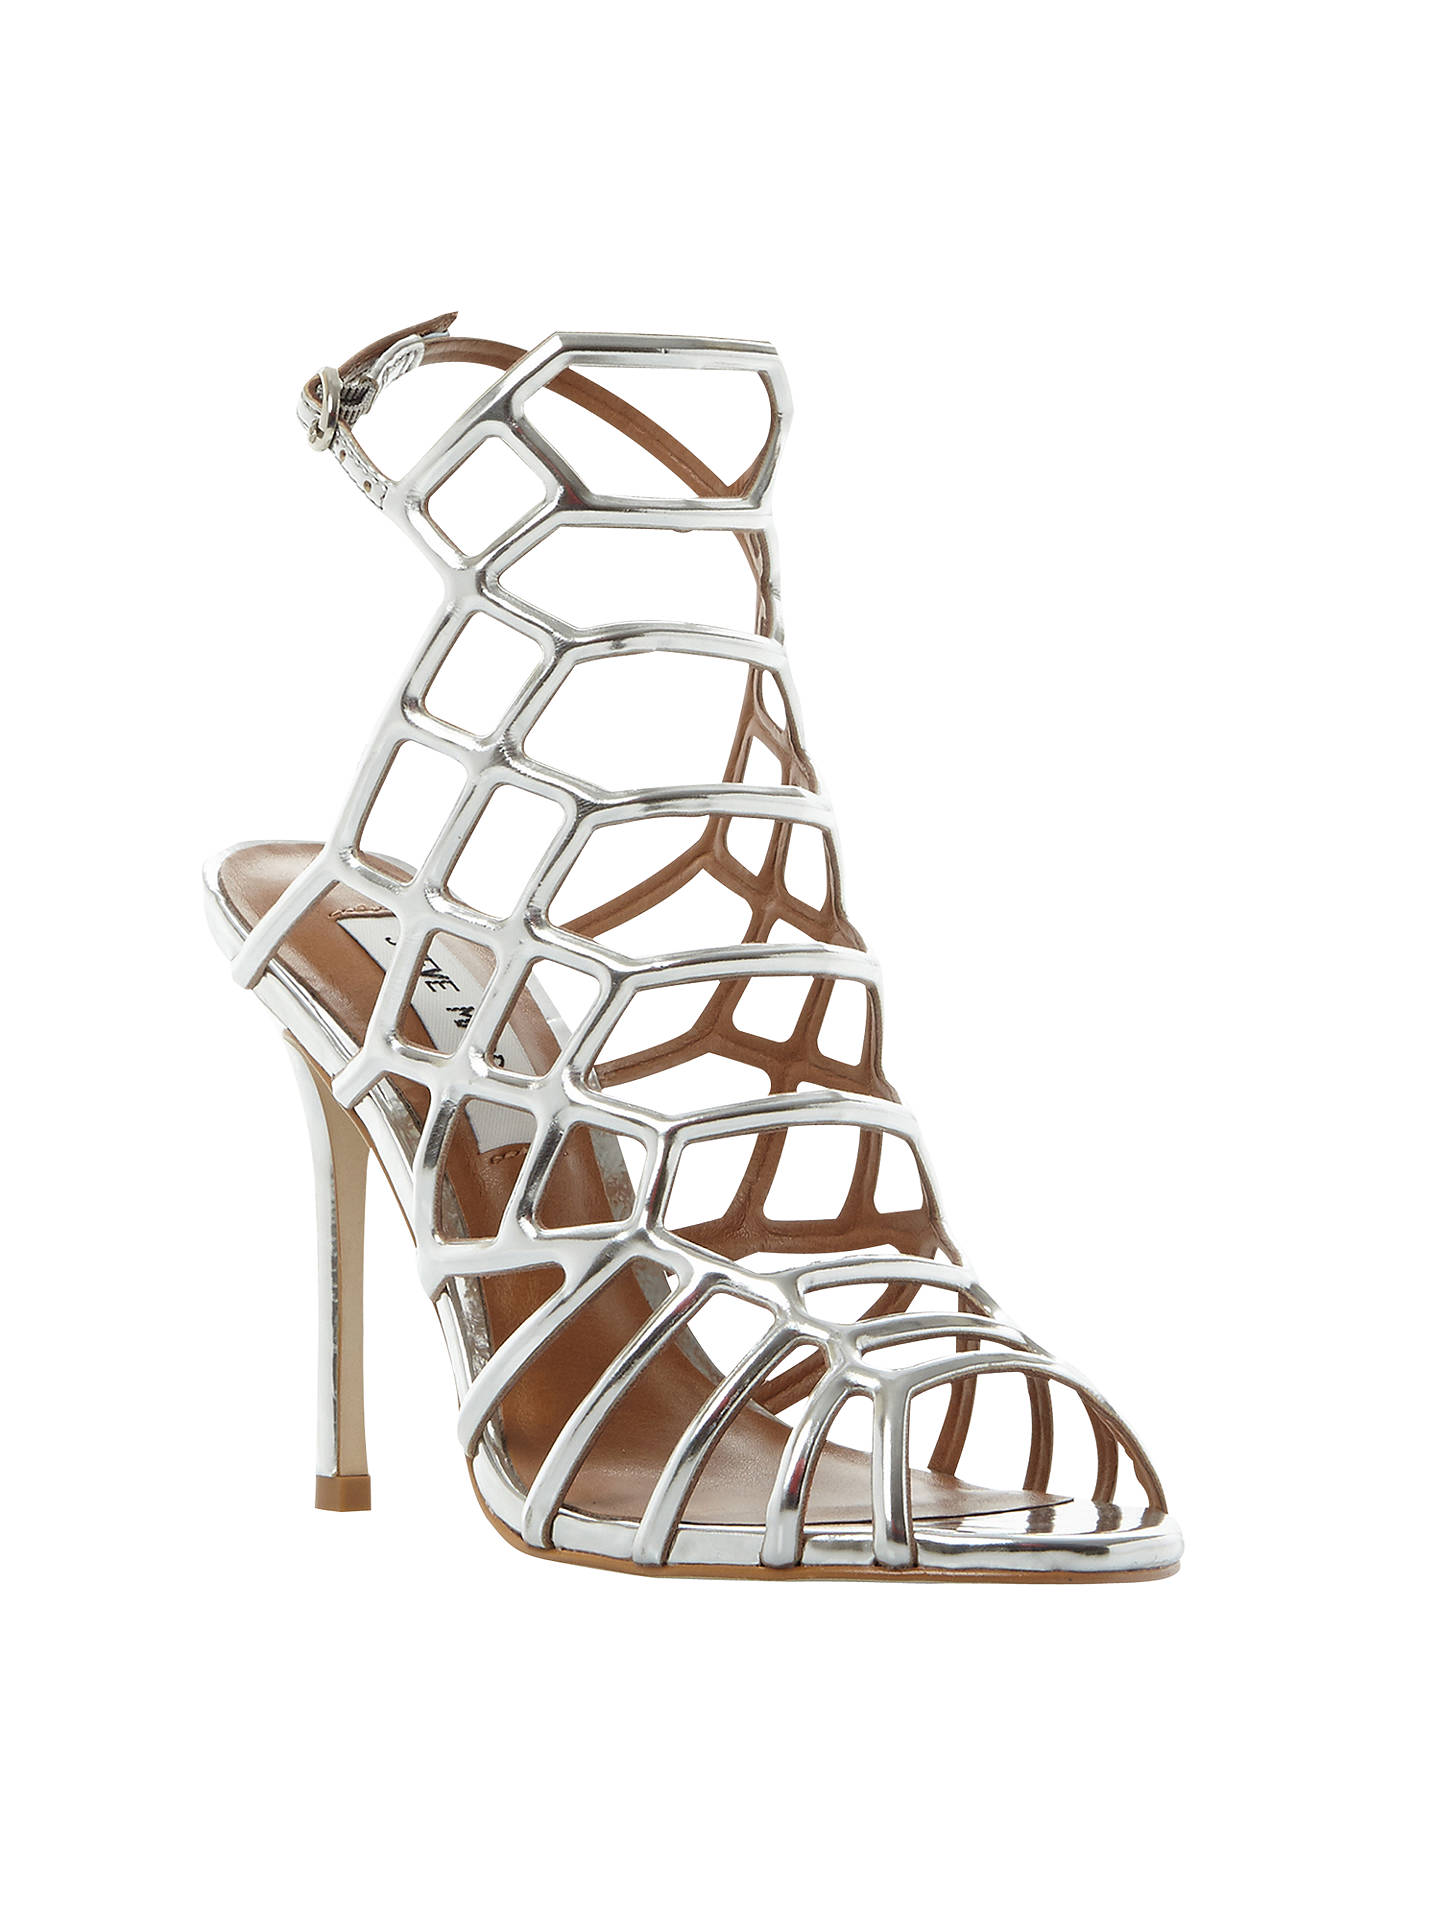 7efc3c82a85 Steve Madden Slithur High Heeled Cage Sandals at John Lewis   Partners